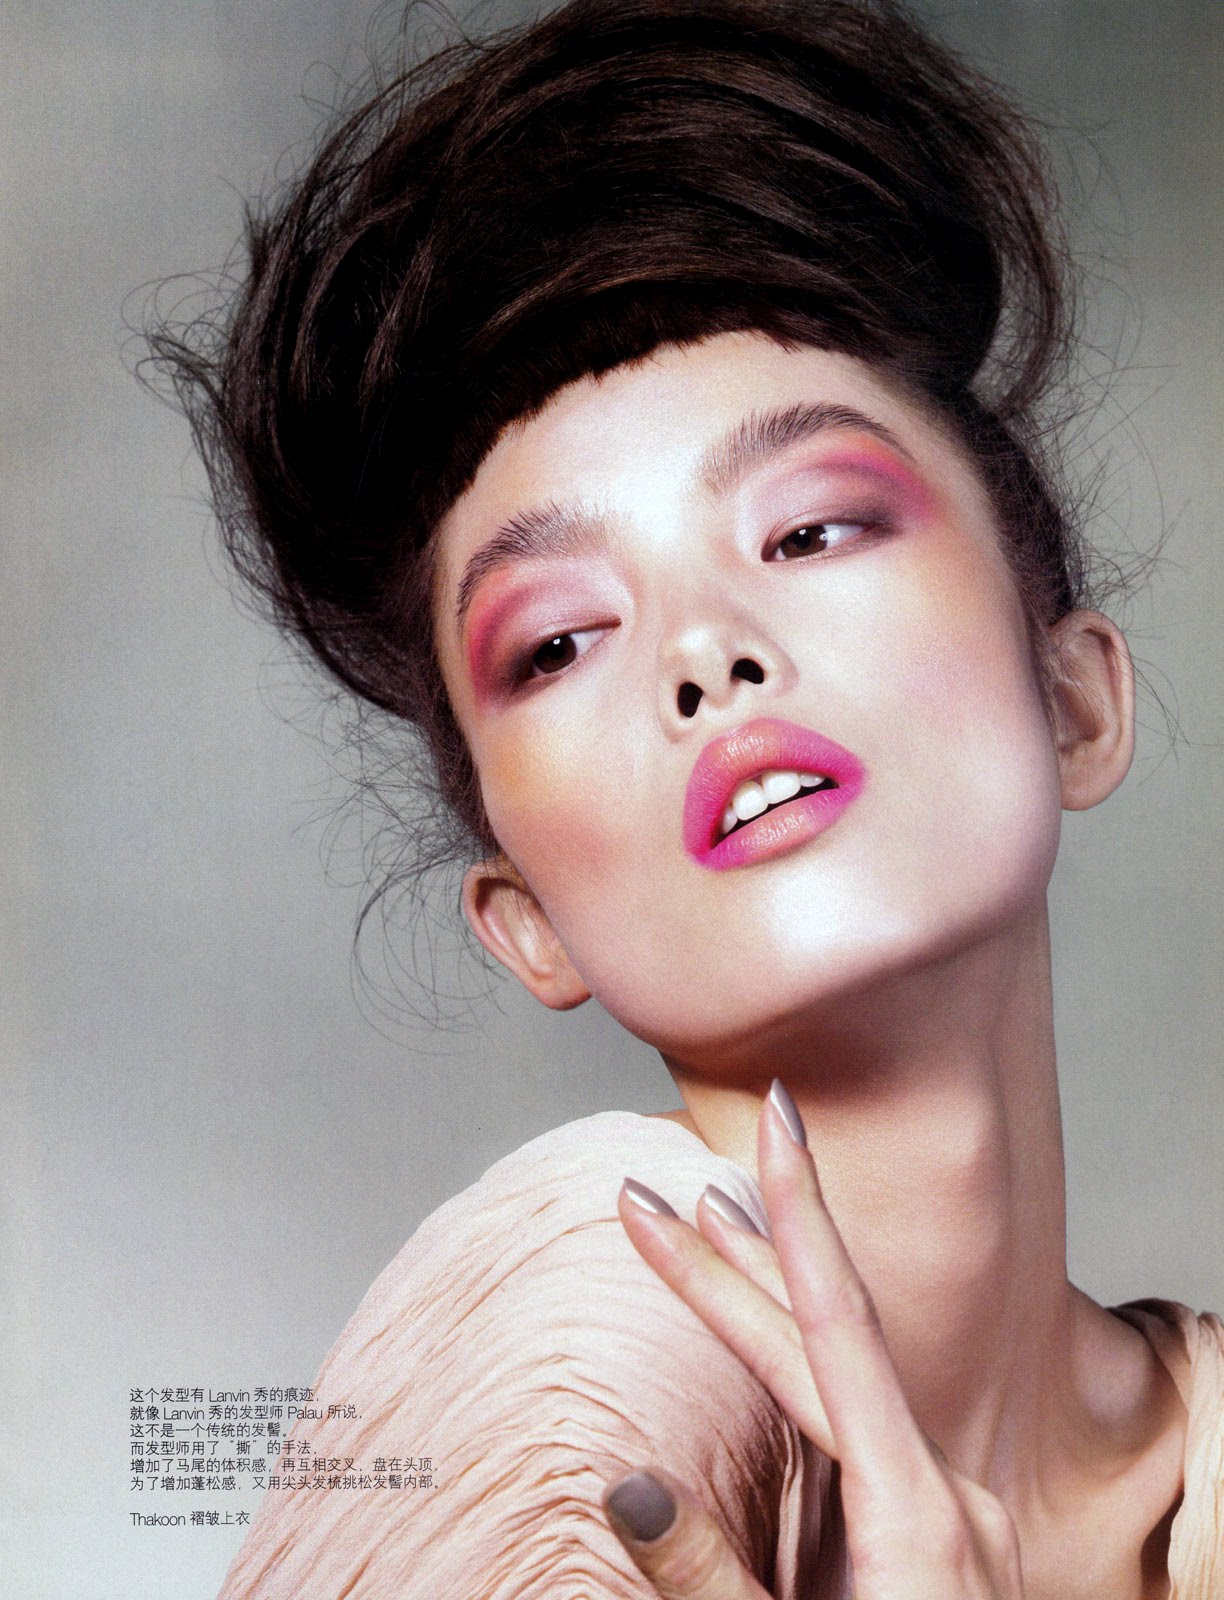 http://3.bp.blogspot.com/_m_3PqTnwV8k/S-rfGluAayI/AAAAAAAAPes/QdwyKStK4HA/s1600/Sun+FeiFei+-+Vogue+China+June+2010+-+3.jpg